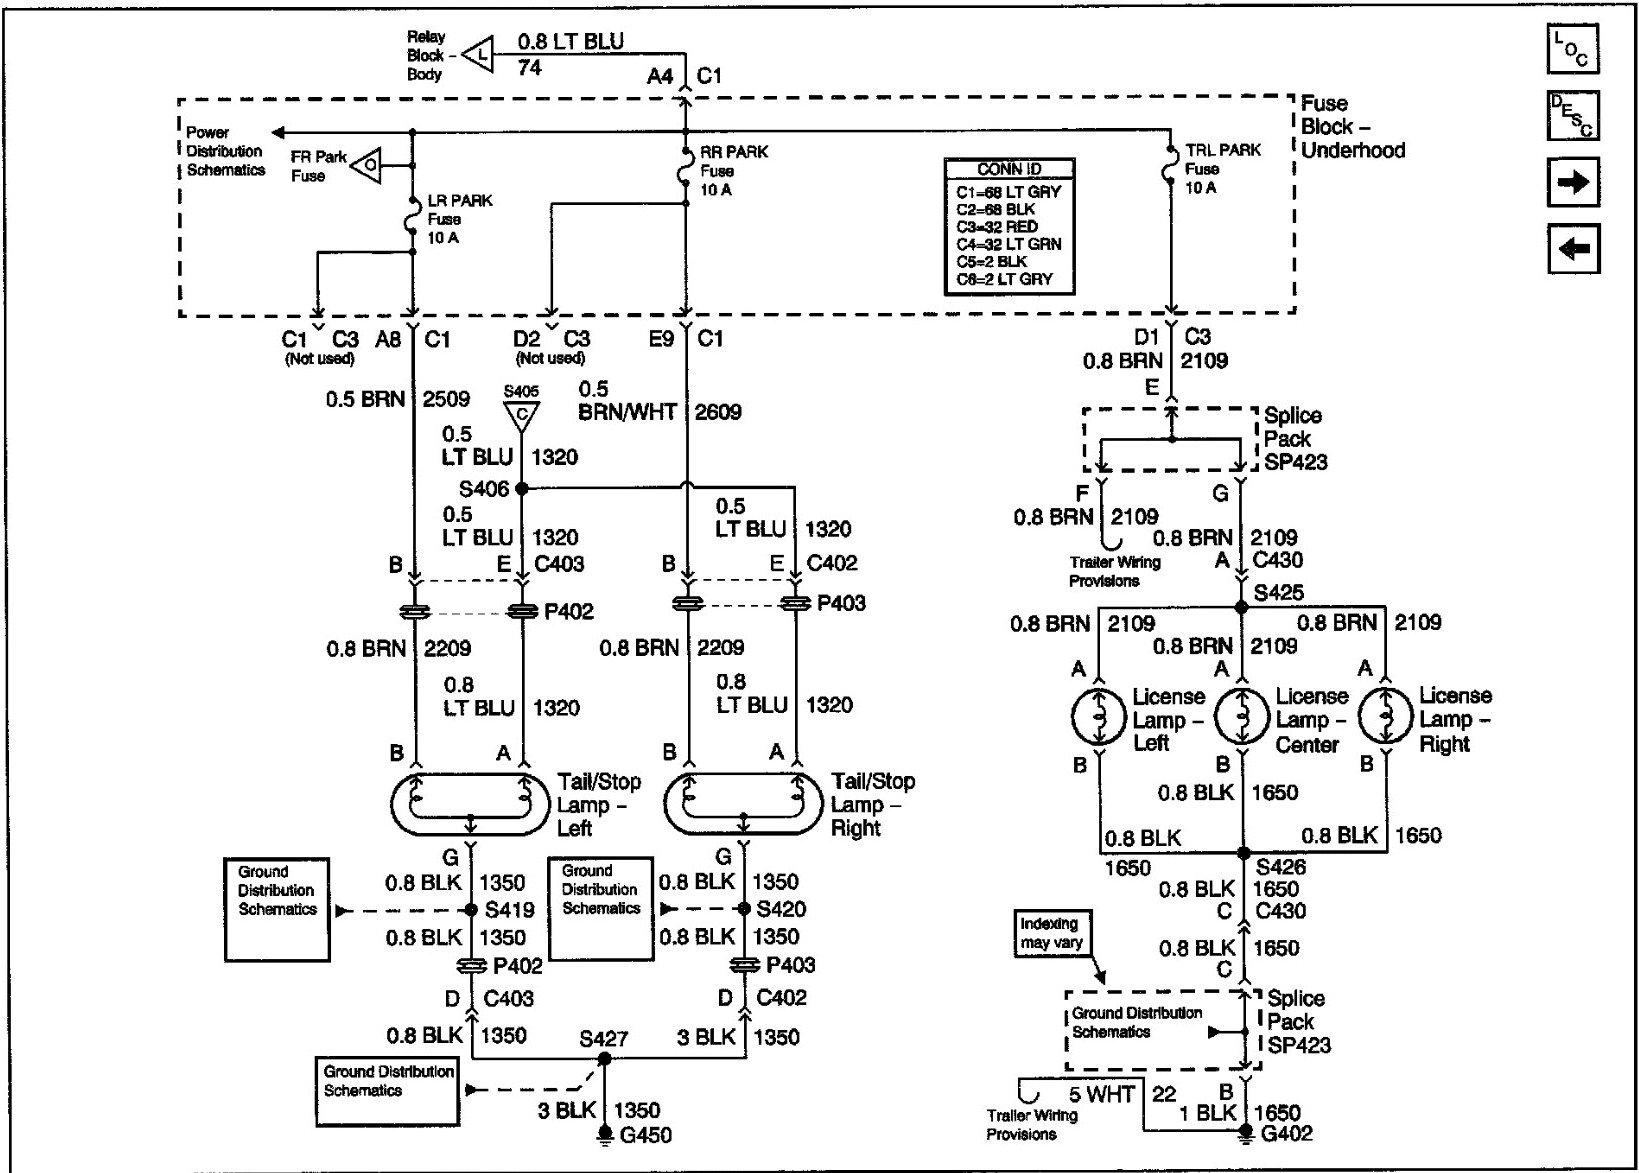 2001 Gmc Jimmy Stereo Wiring Diagram from ww2.justanswer.com